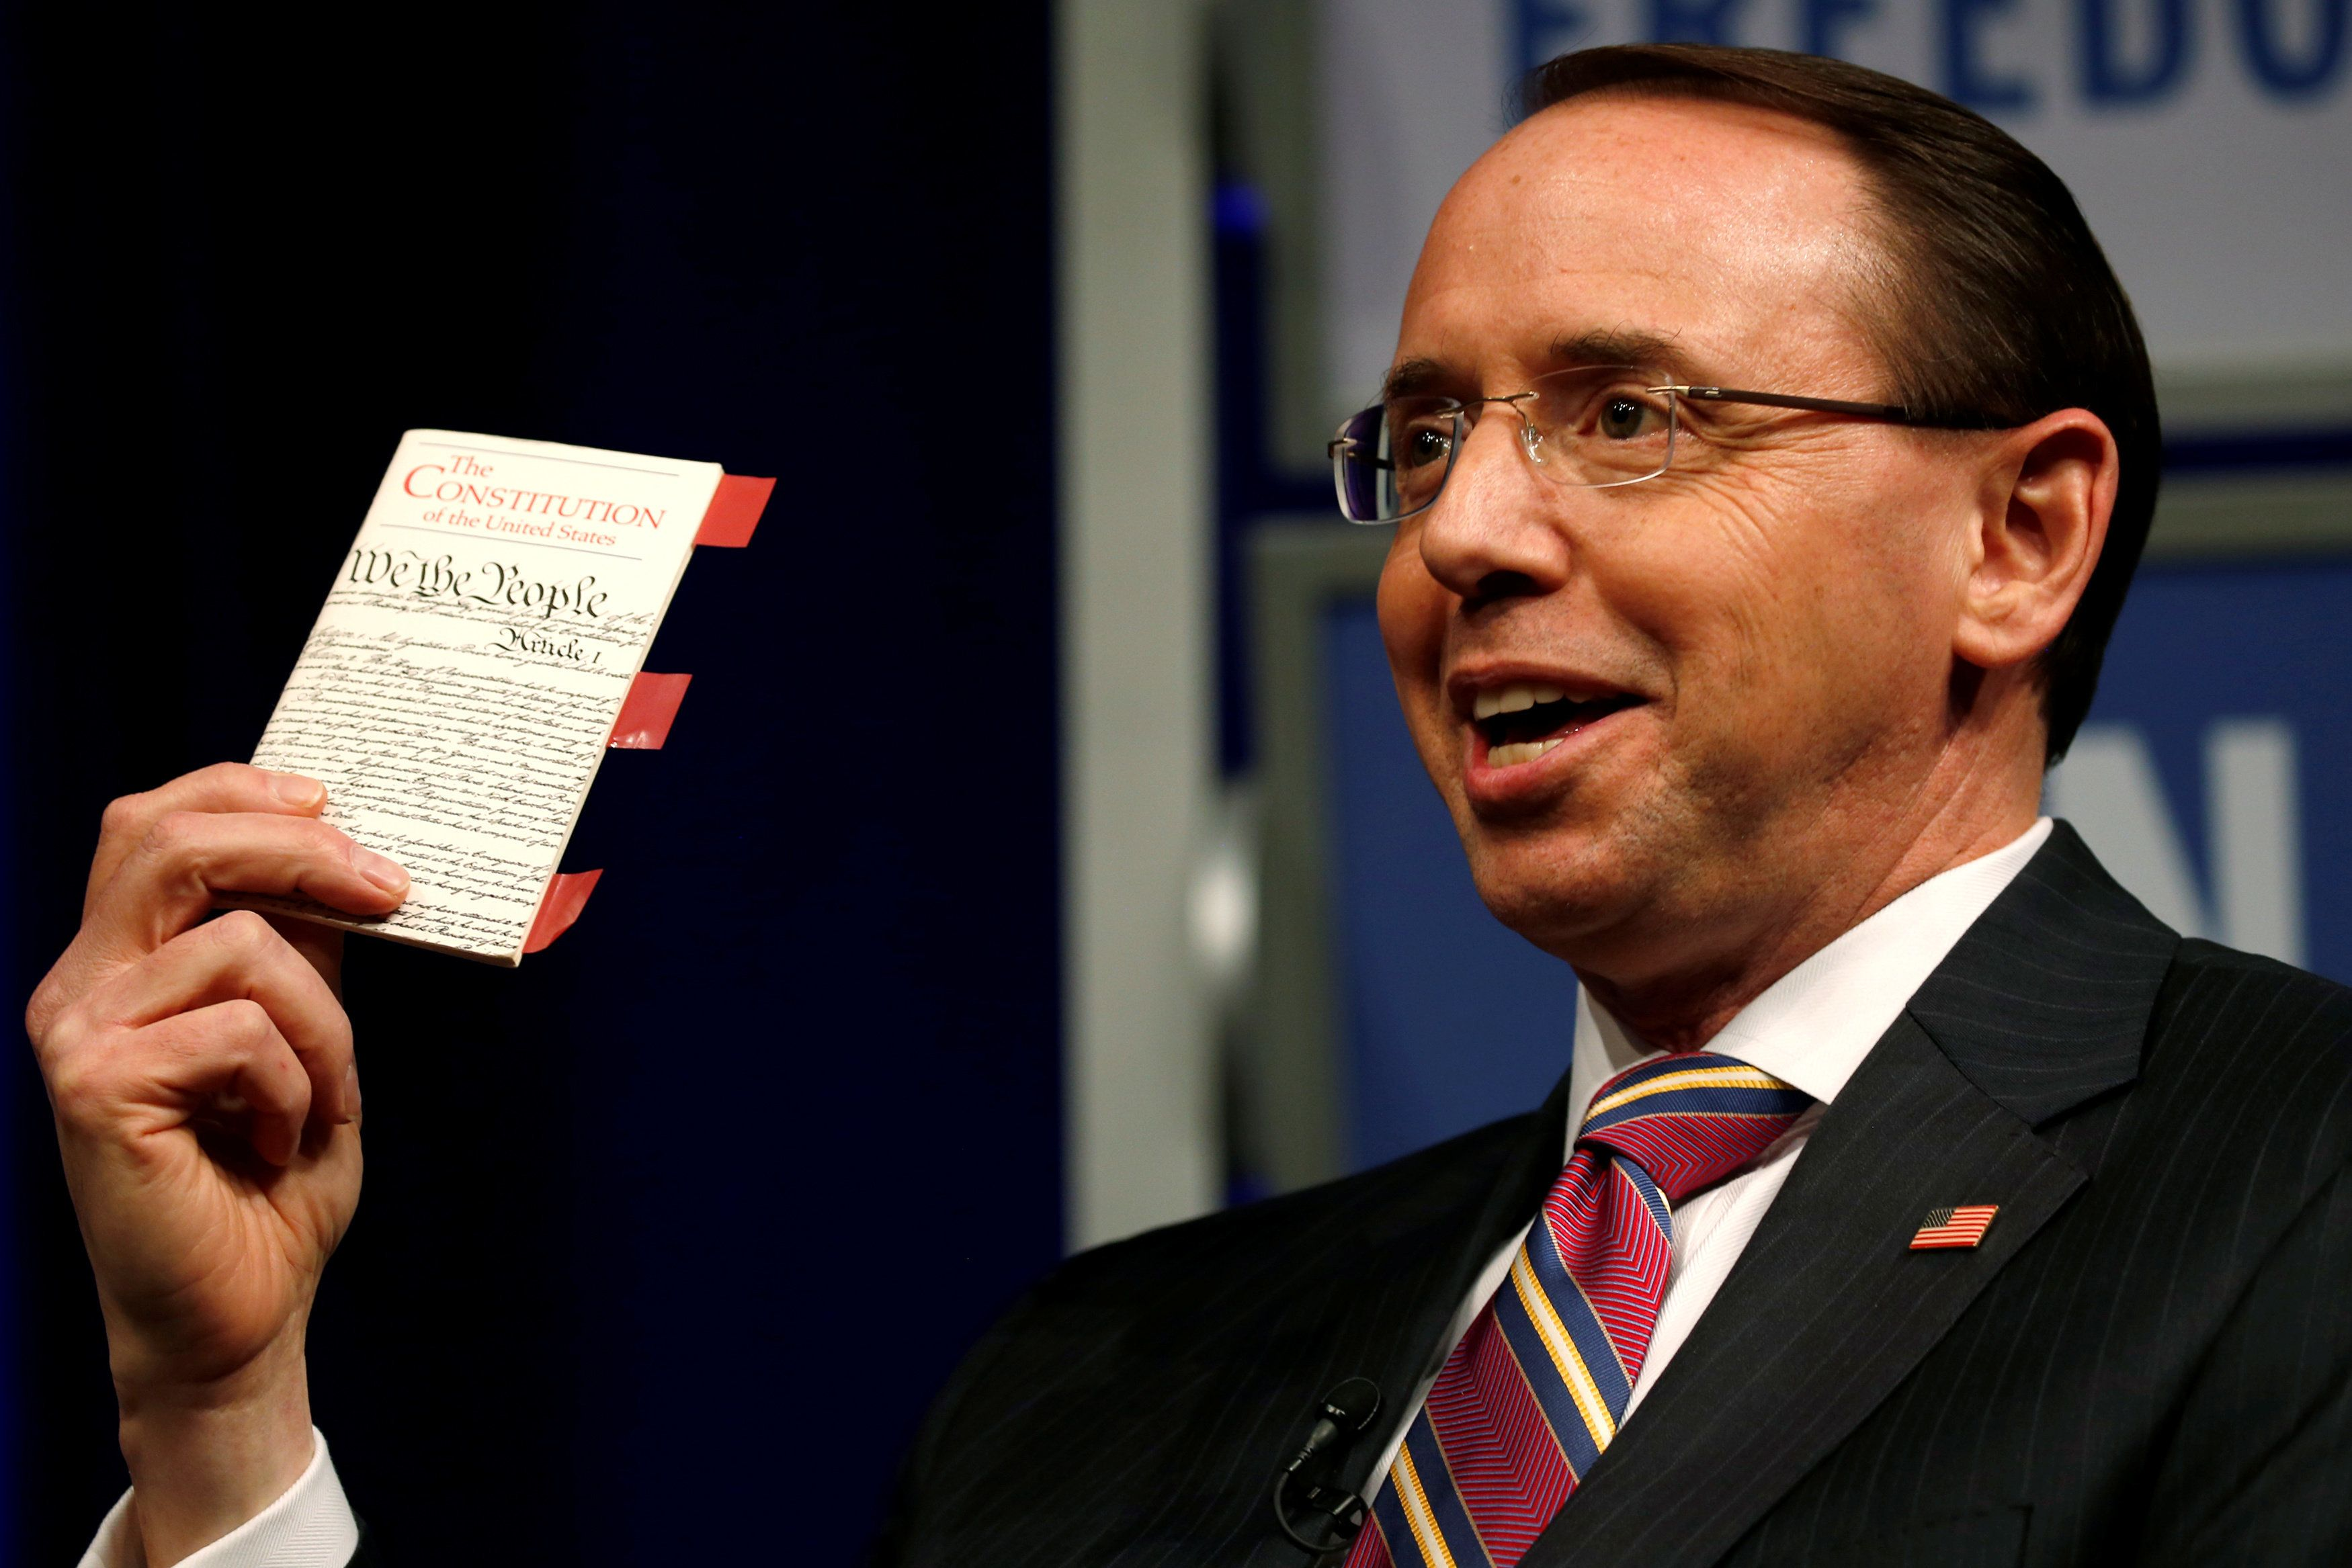 Deputy U.S. Attorney General Rod Rosenstein holds his copy of the U.S. Constitution as he participates in a Law Day event at the Newseum in Washington, U.S. May 1, 2018.  REUTERS/Jonathan Ernst